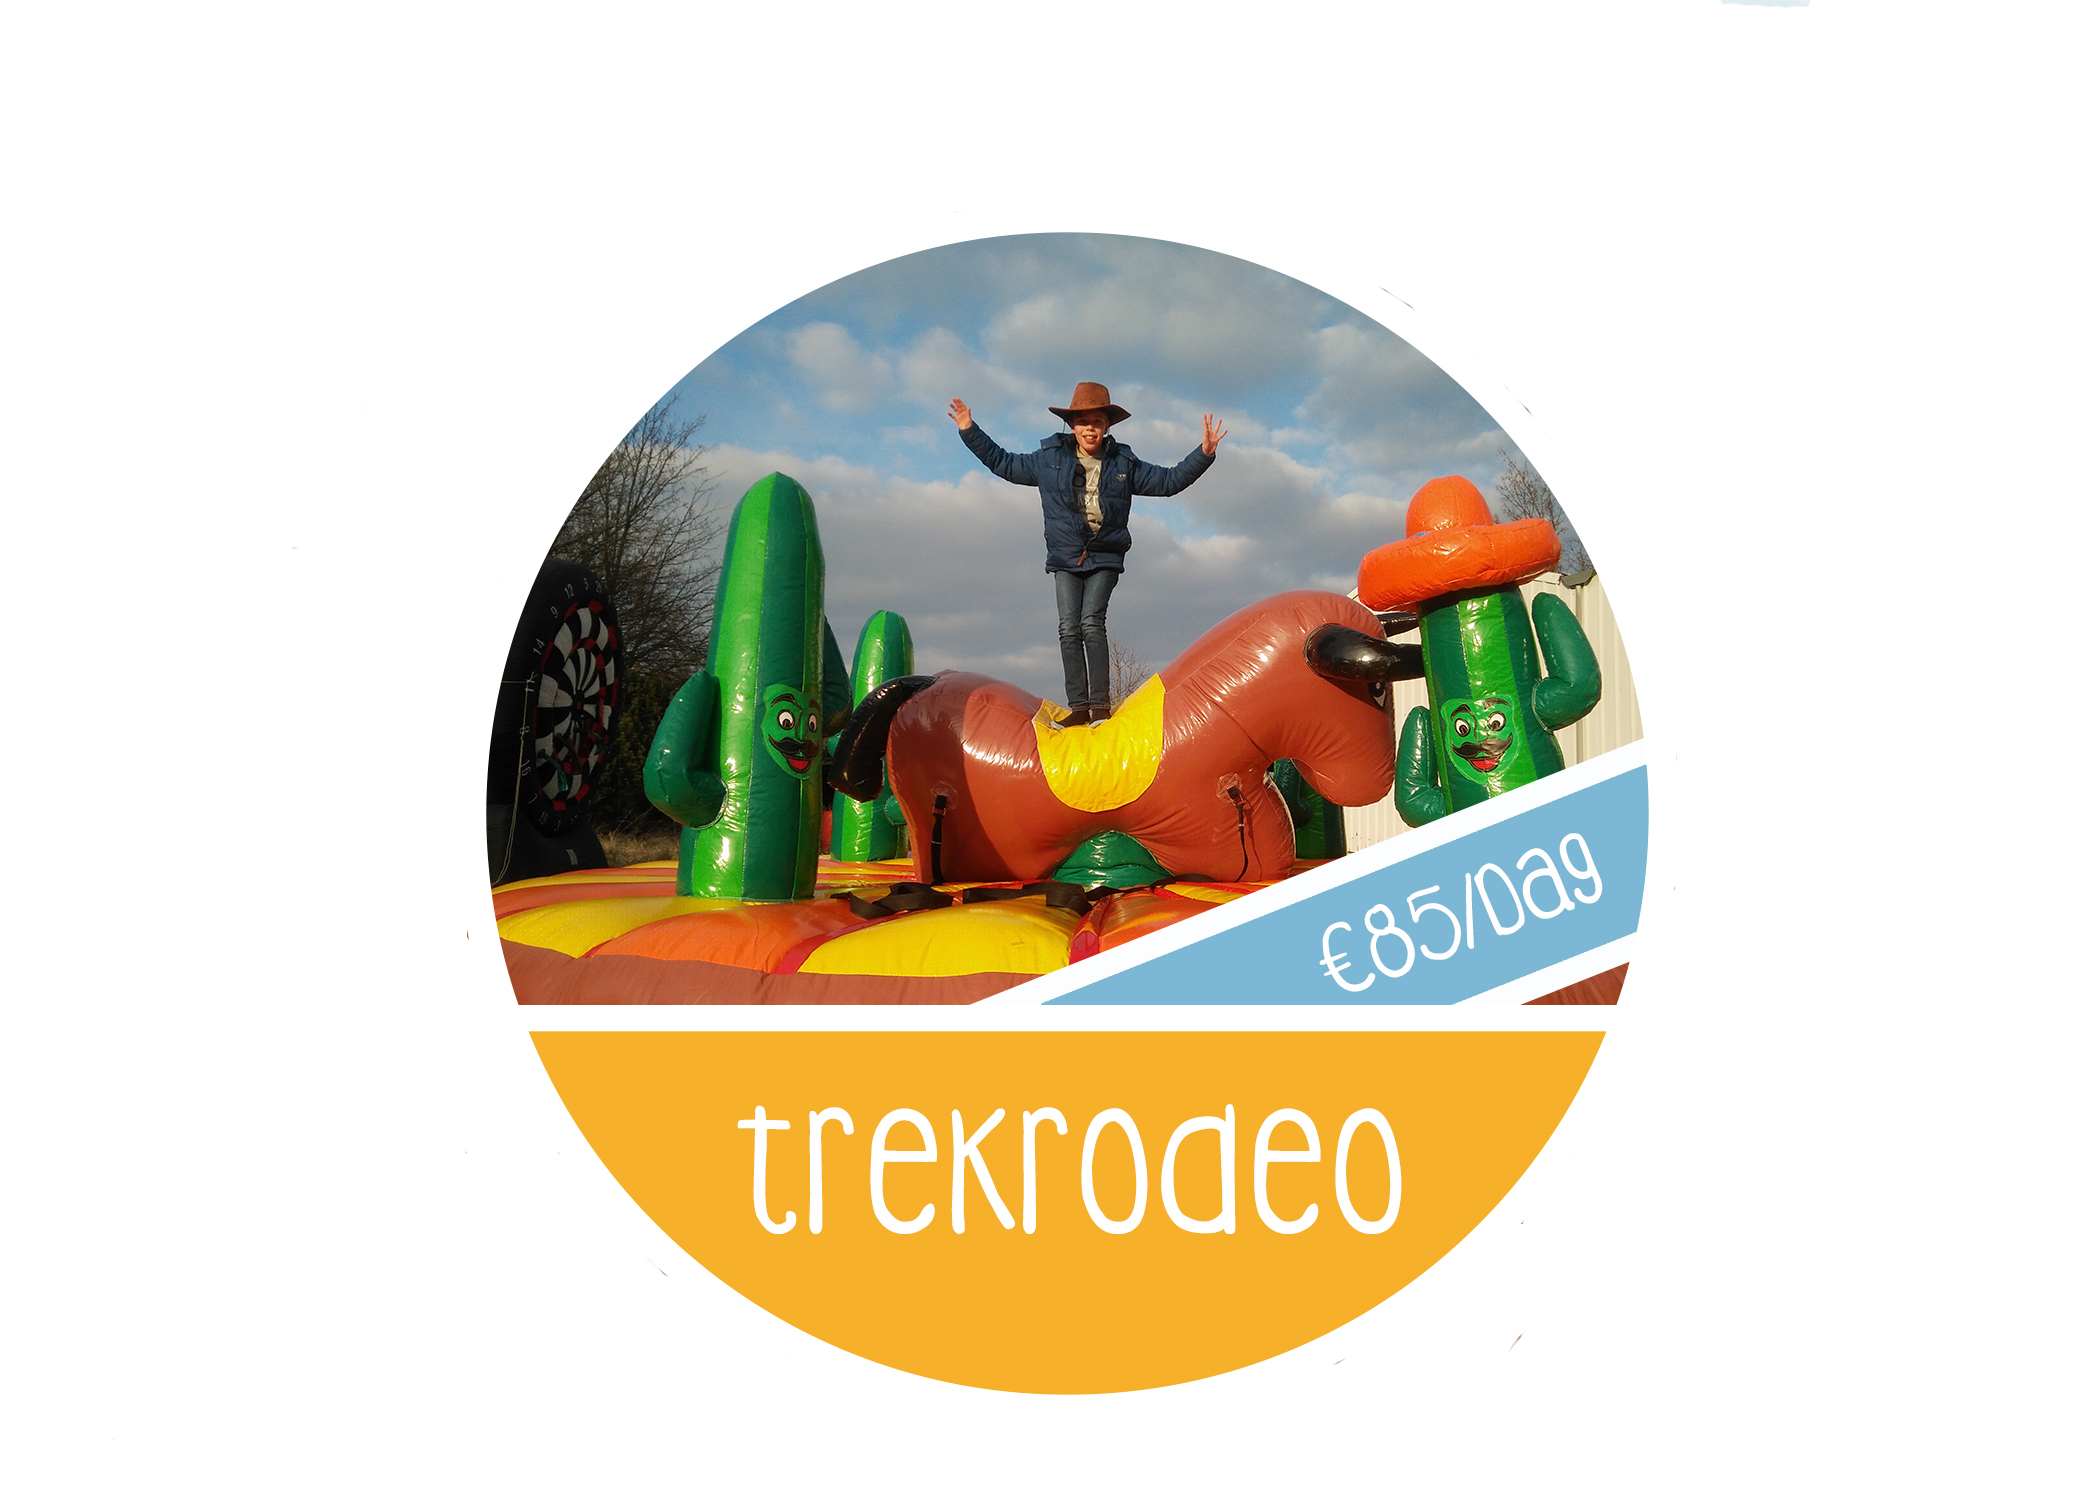 bollen_eventa_trekrodeo.jpg